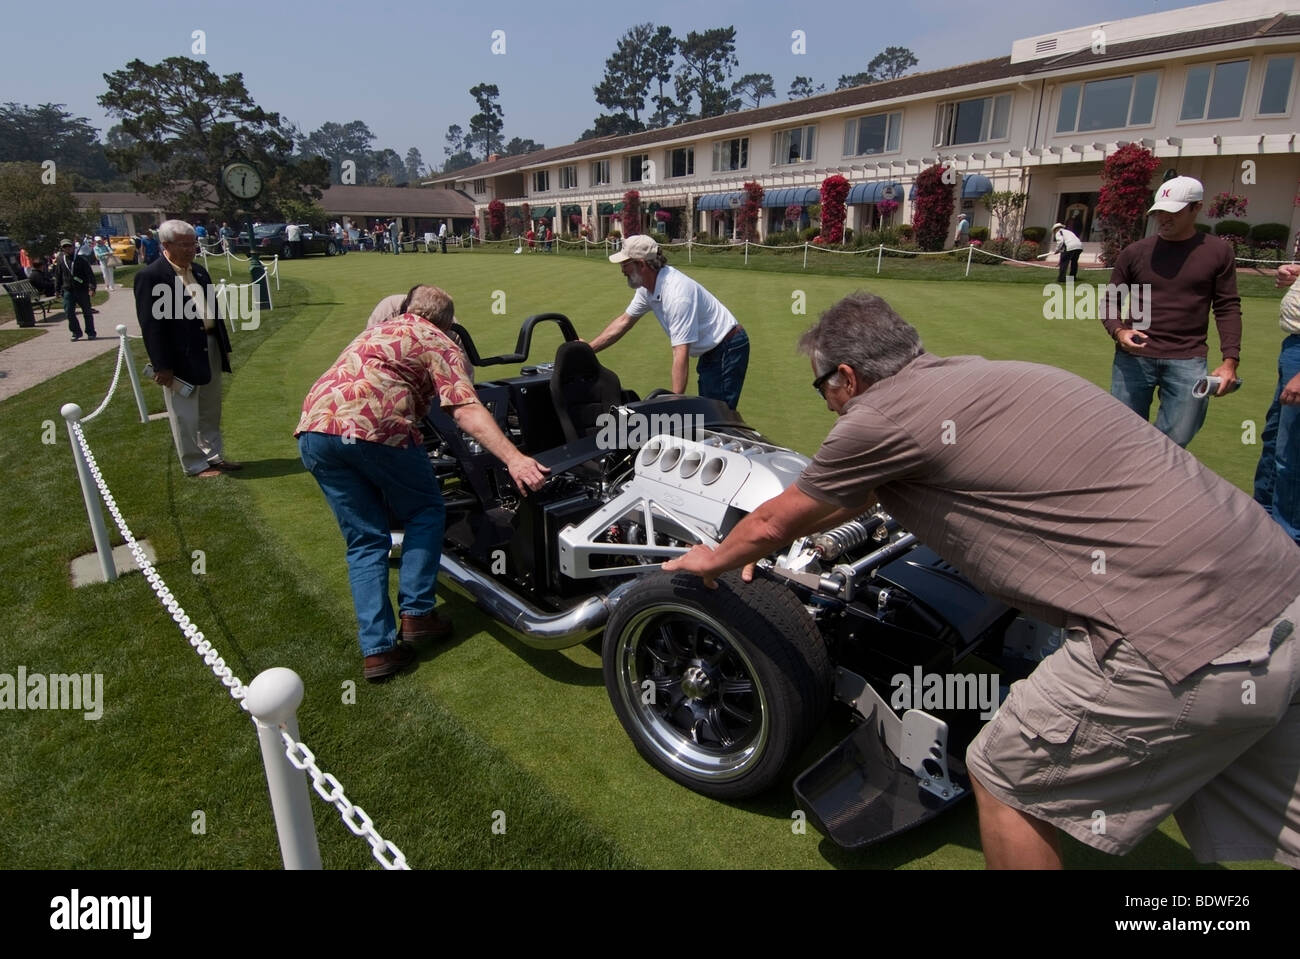 ICONIC Roadster on to the Practice Green in front of the Lodge at Pebble Beach during the 2009 Pebble Beach Concours - Stock Image